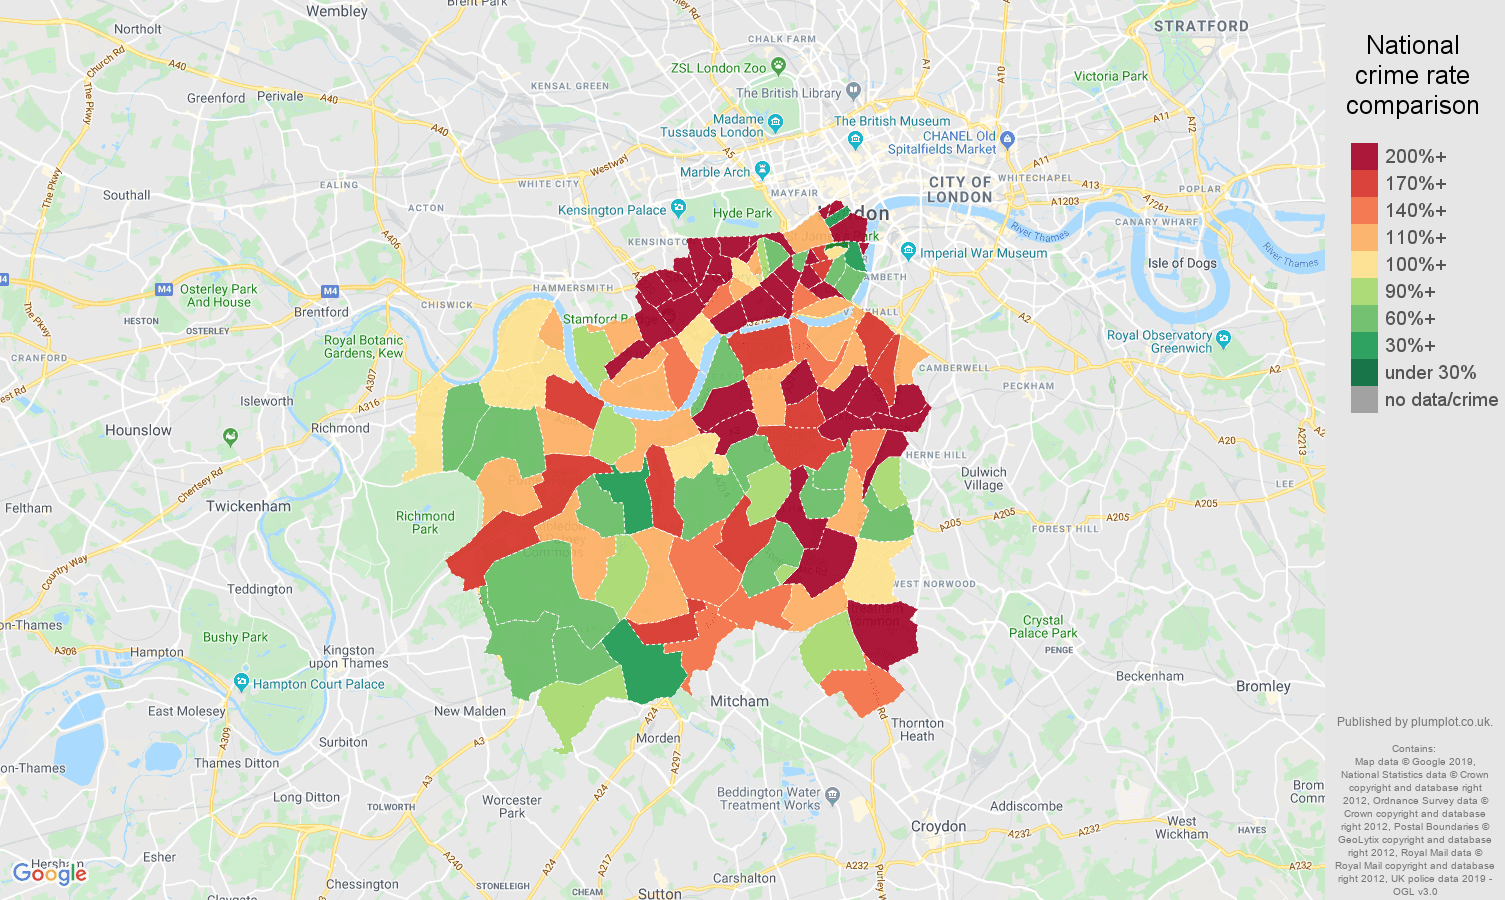 South West London other theft crime rate comparison map